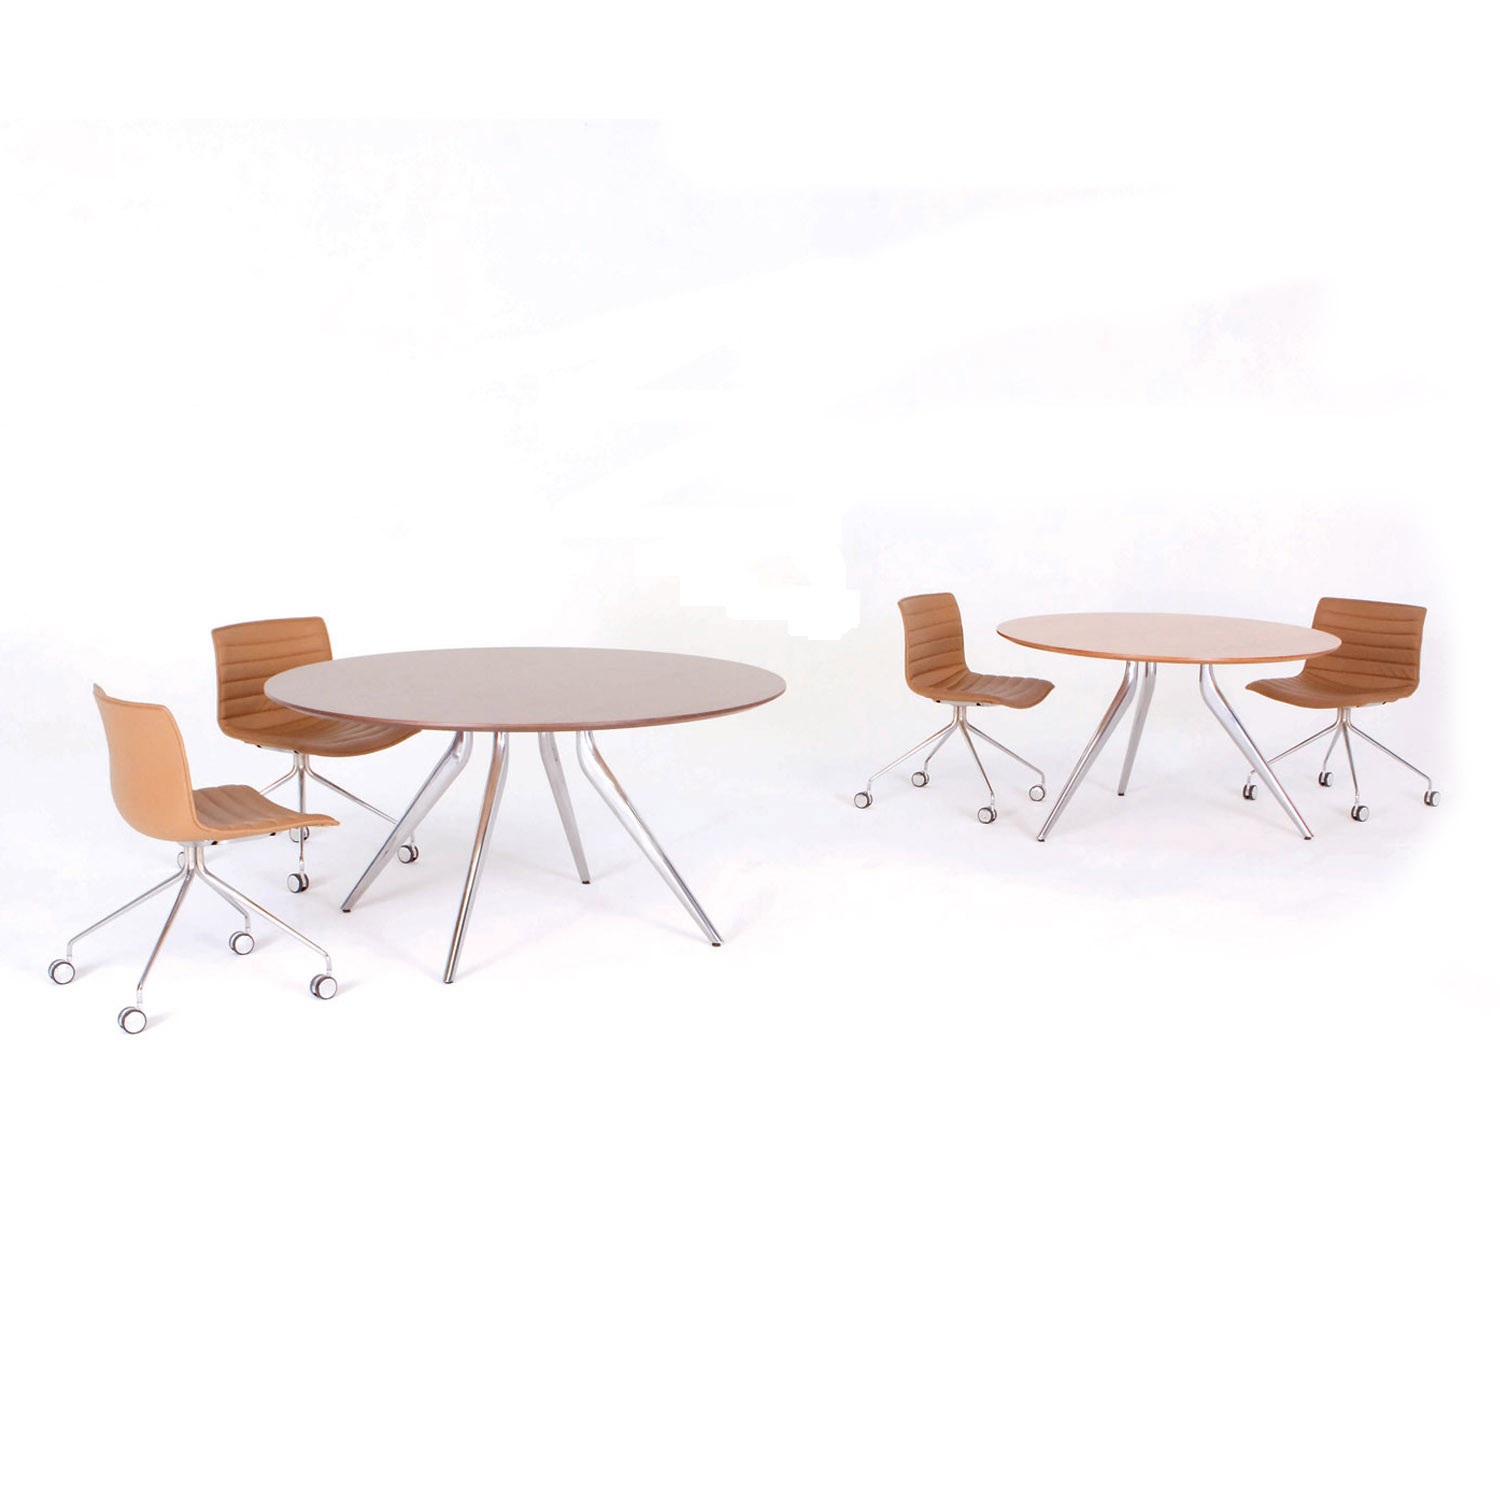 Eona Circular Tables